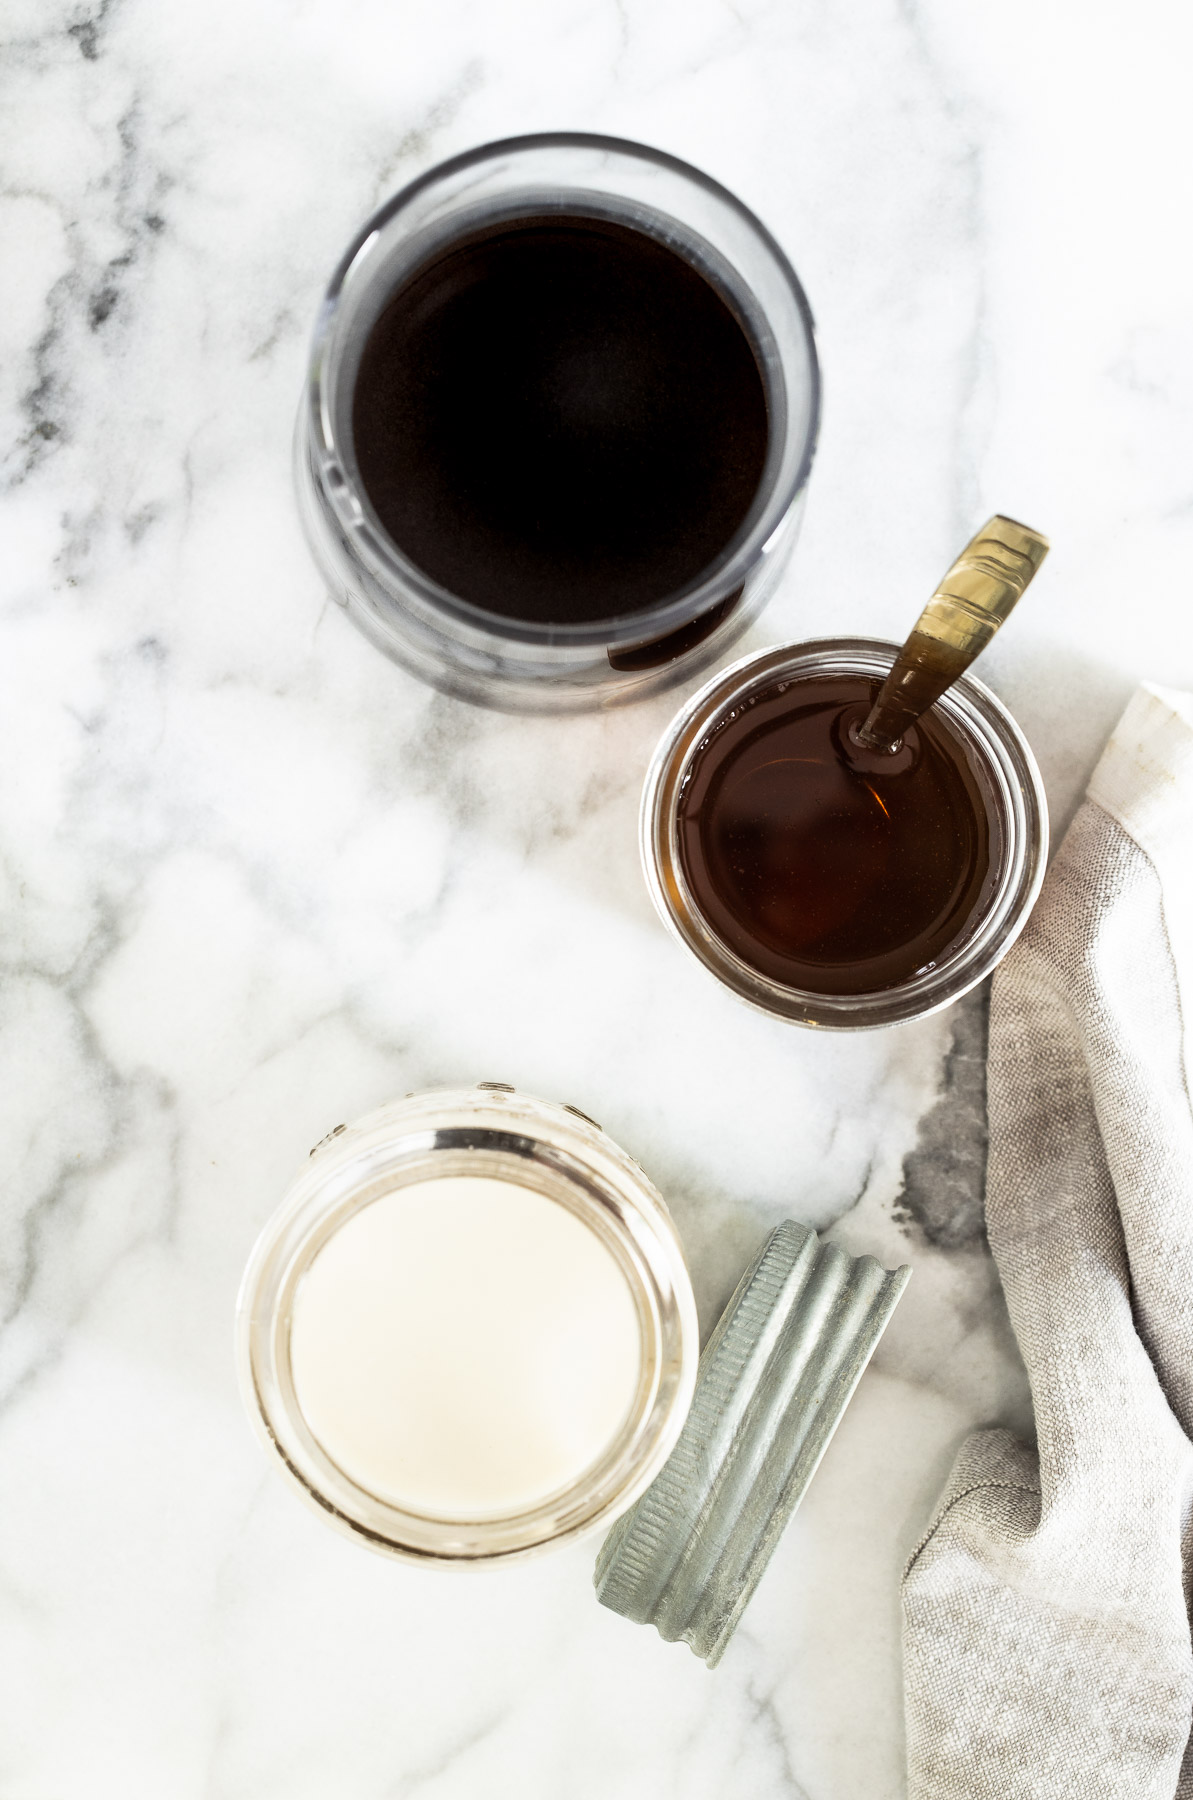 Ingredients to make iced vanilla latte laid out in glass jars on a marble surface.